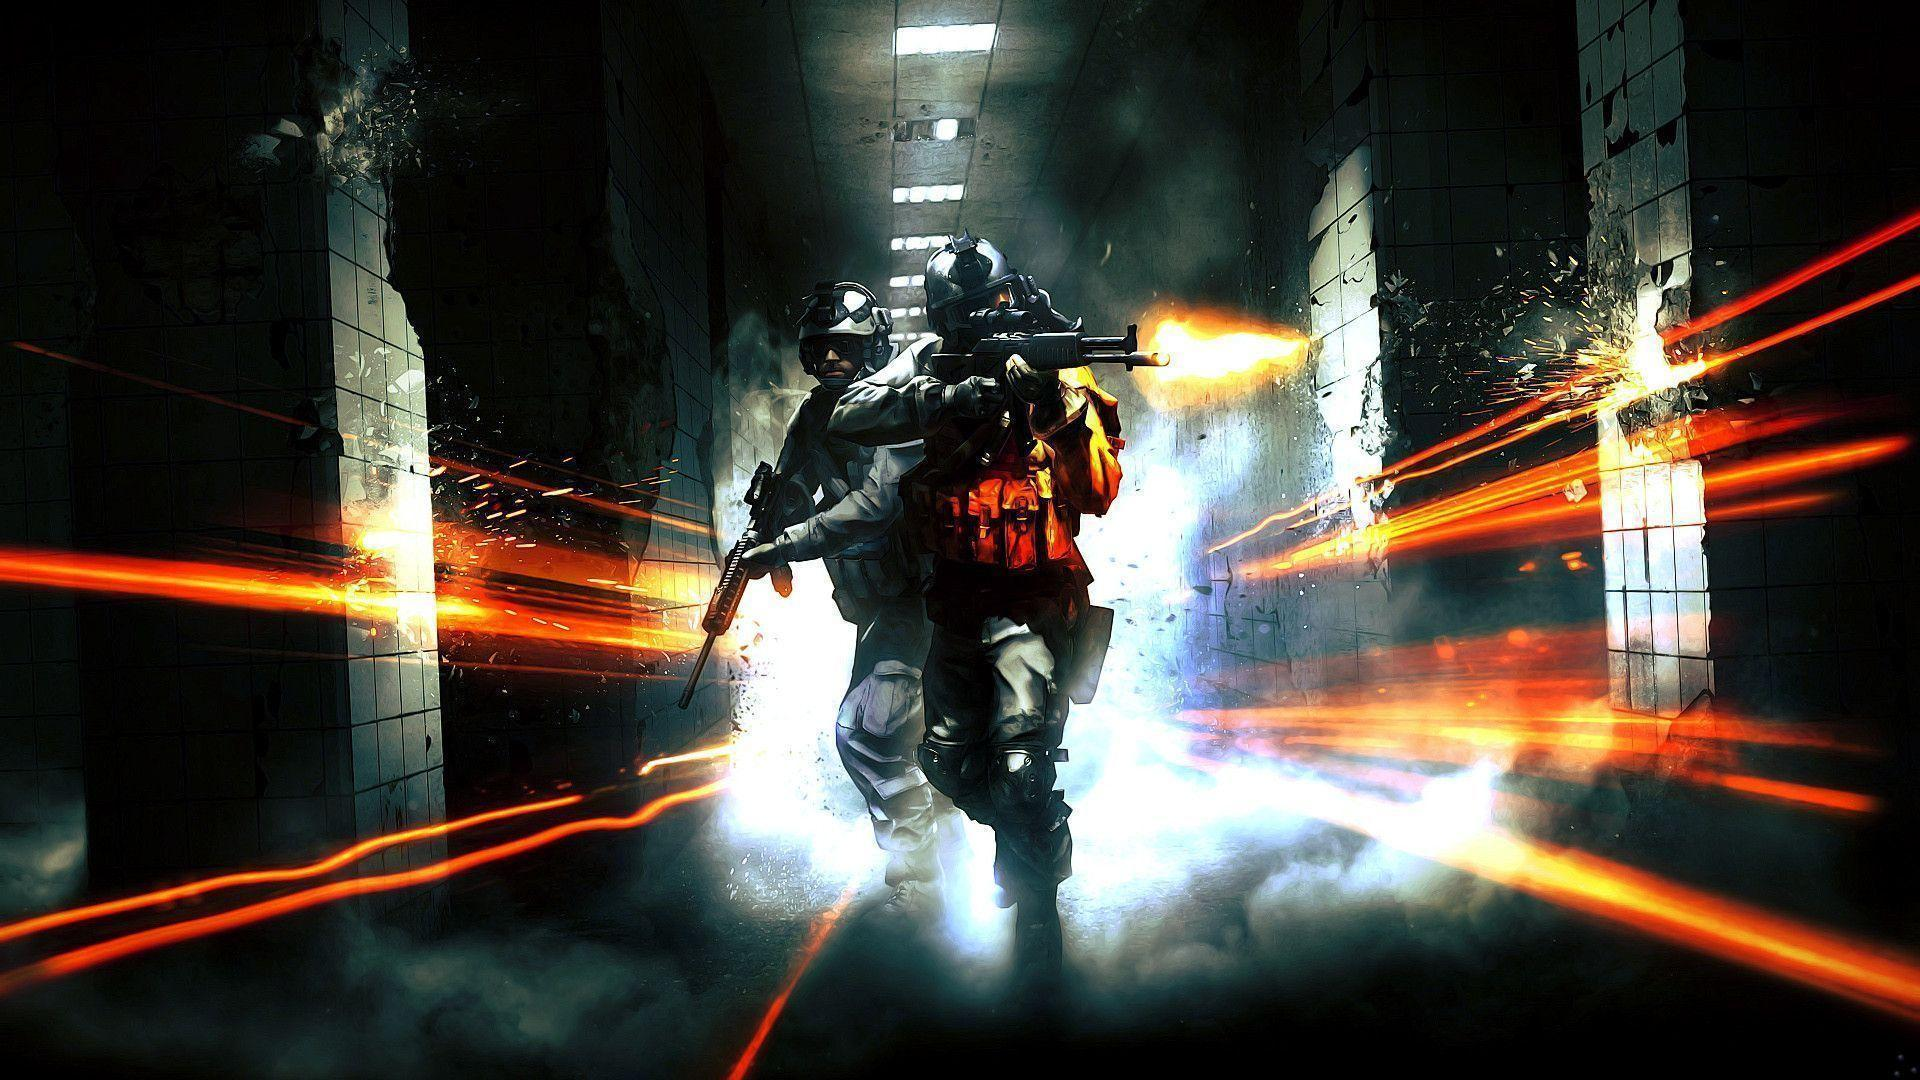 Cool Battlefield 4 Fire Armor In Black Background: Battlefield 3 Wallpapers 1080p